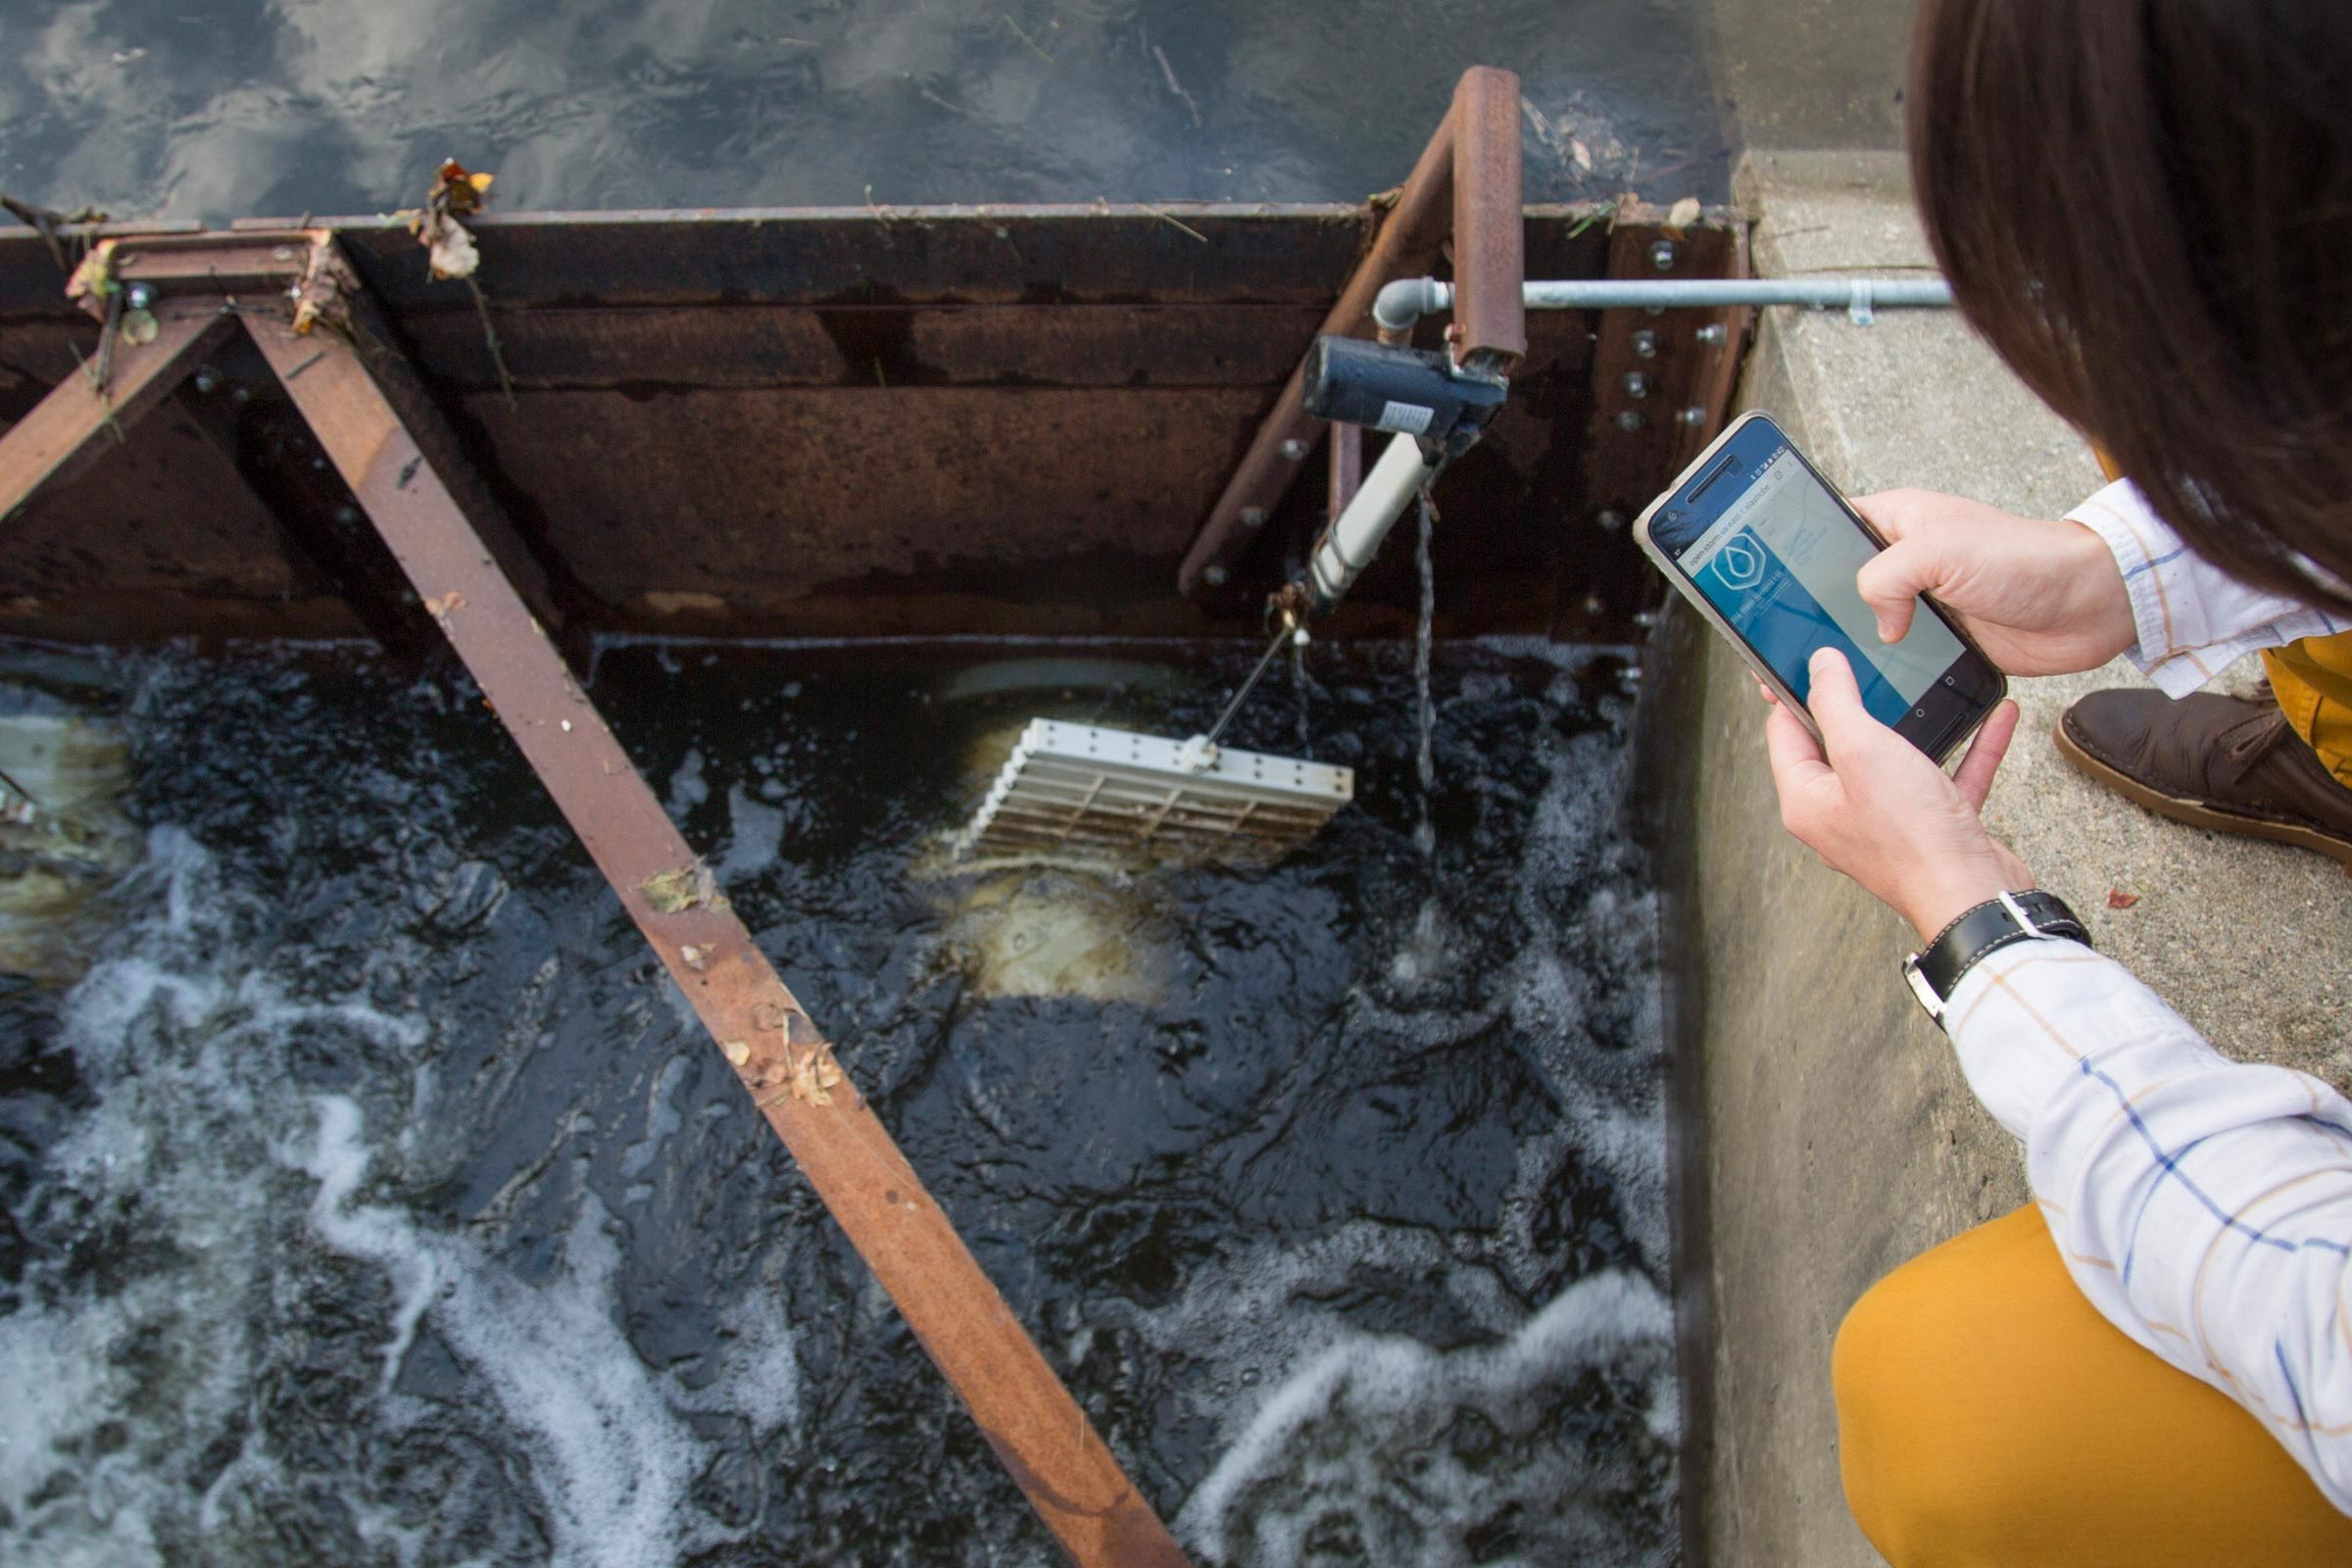 A man uses his phone to remotely control water valves